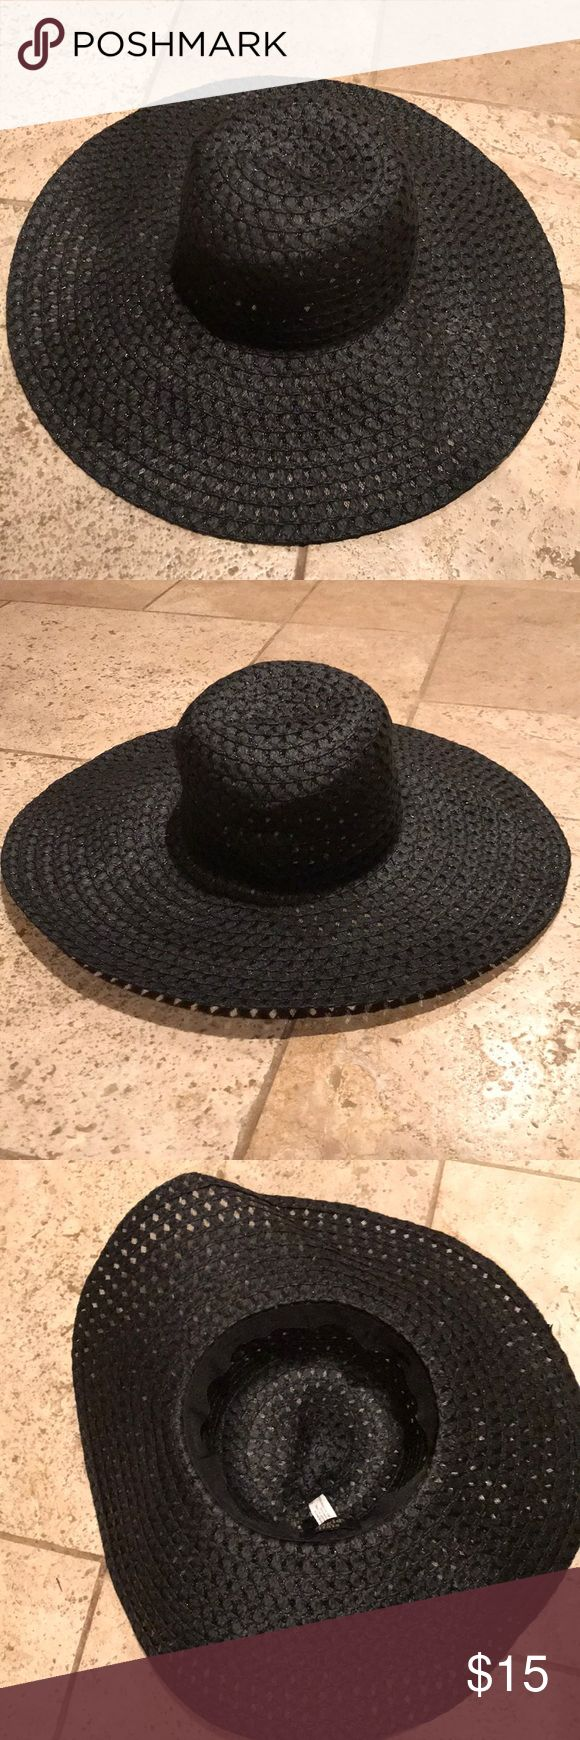 Nearly New! Magic Hat Black Floppy Hat. Used, Worn Once. Great Condition. Derby Hat/Summer Hat. Big Floppy Paper Straw Hat. Color: Black. Magid Hats Accessories Hats